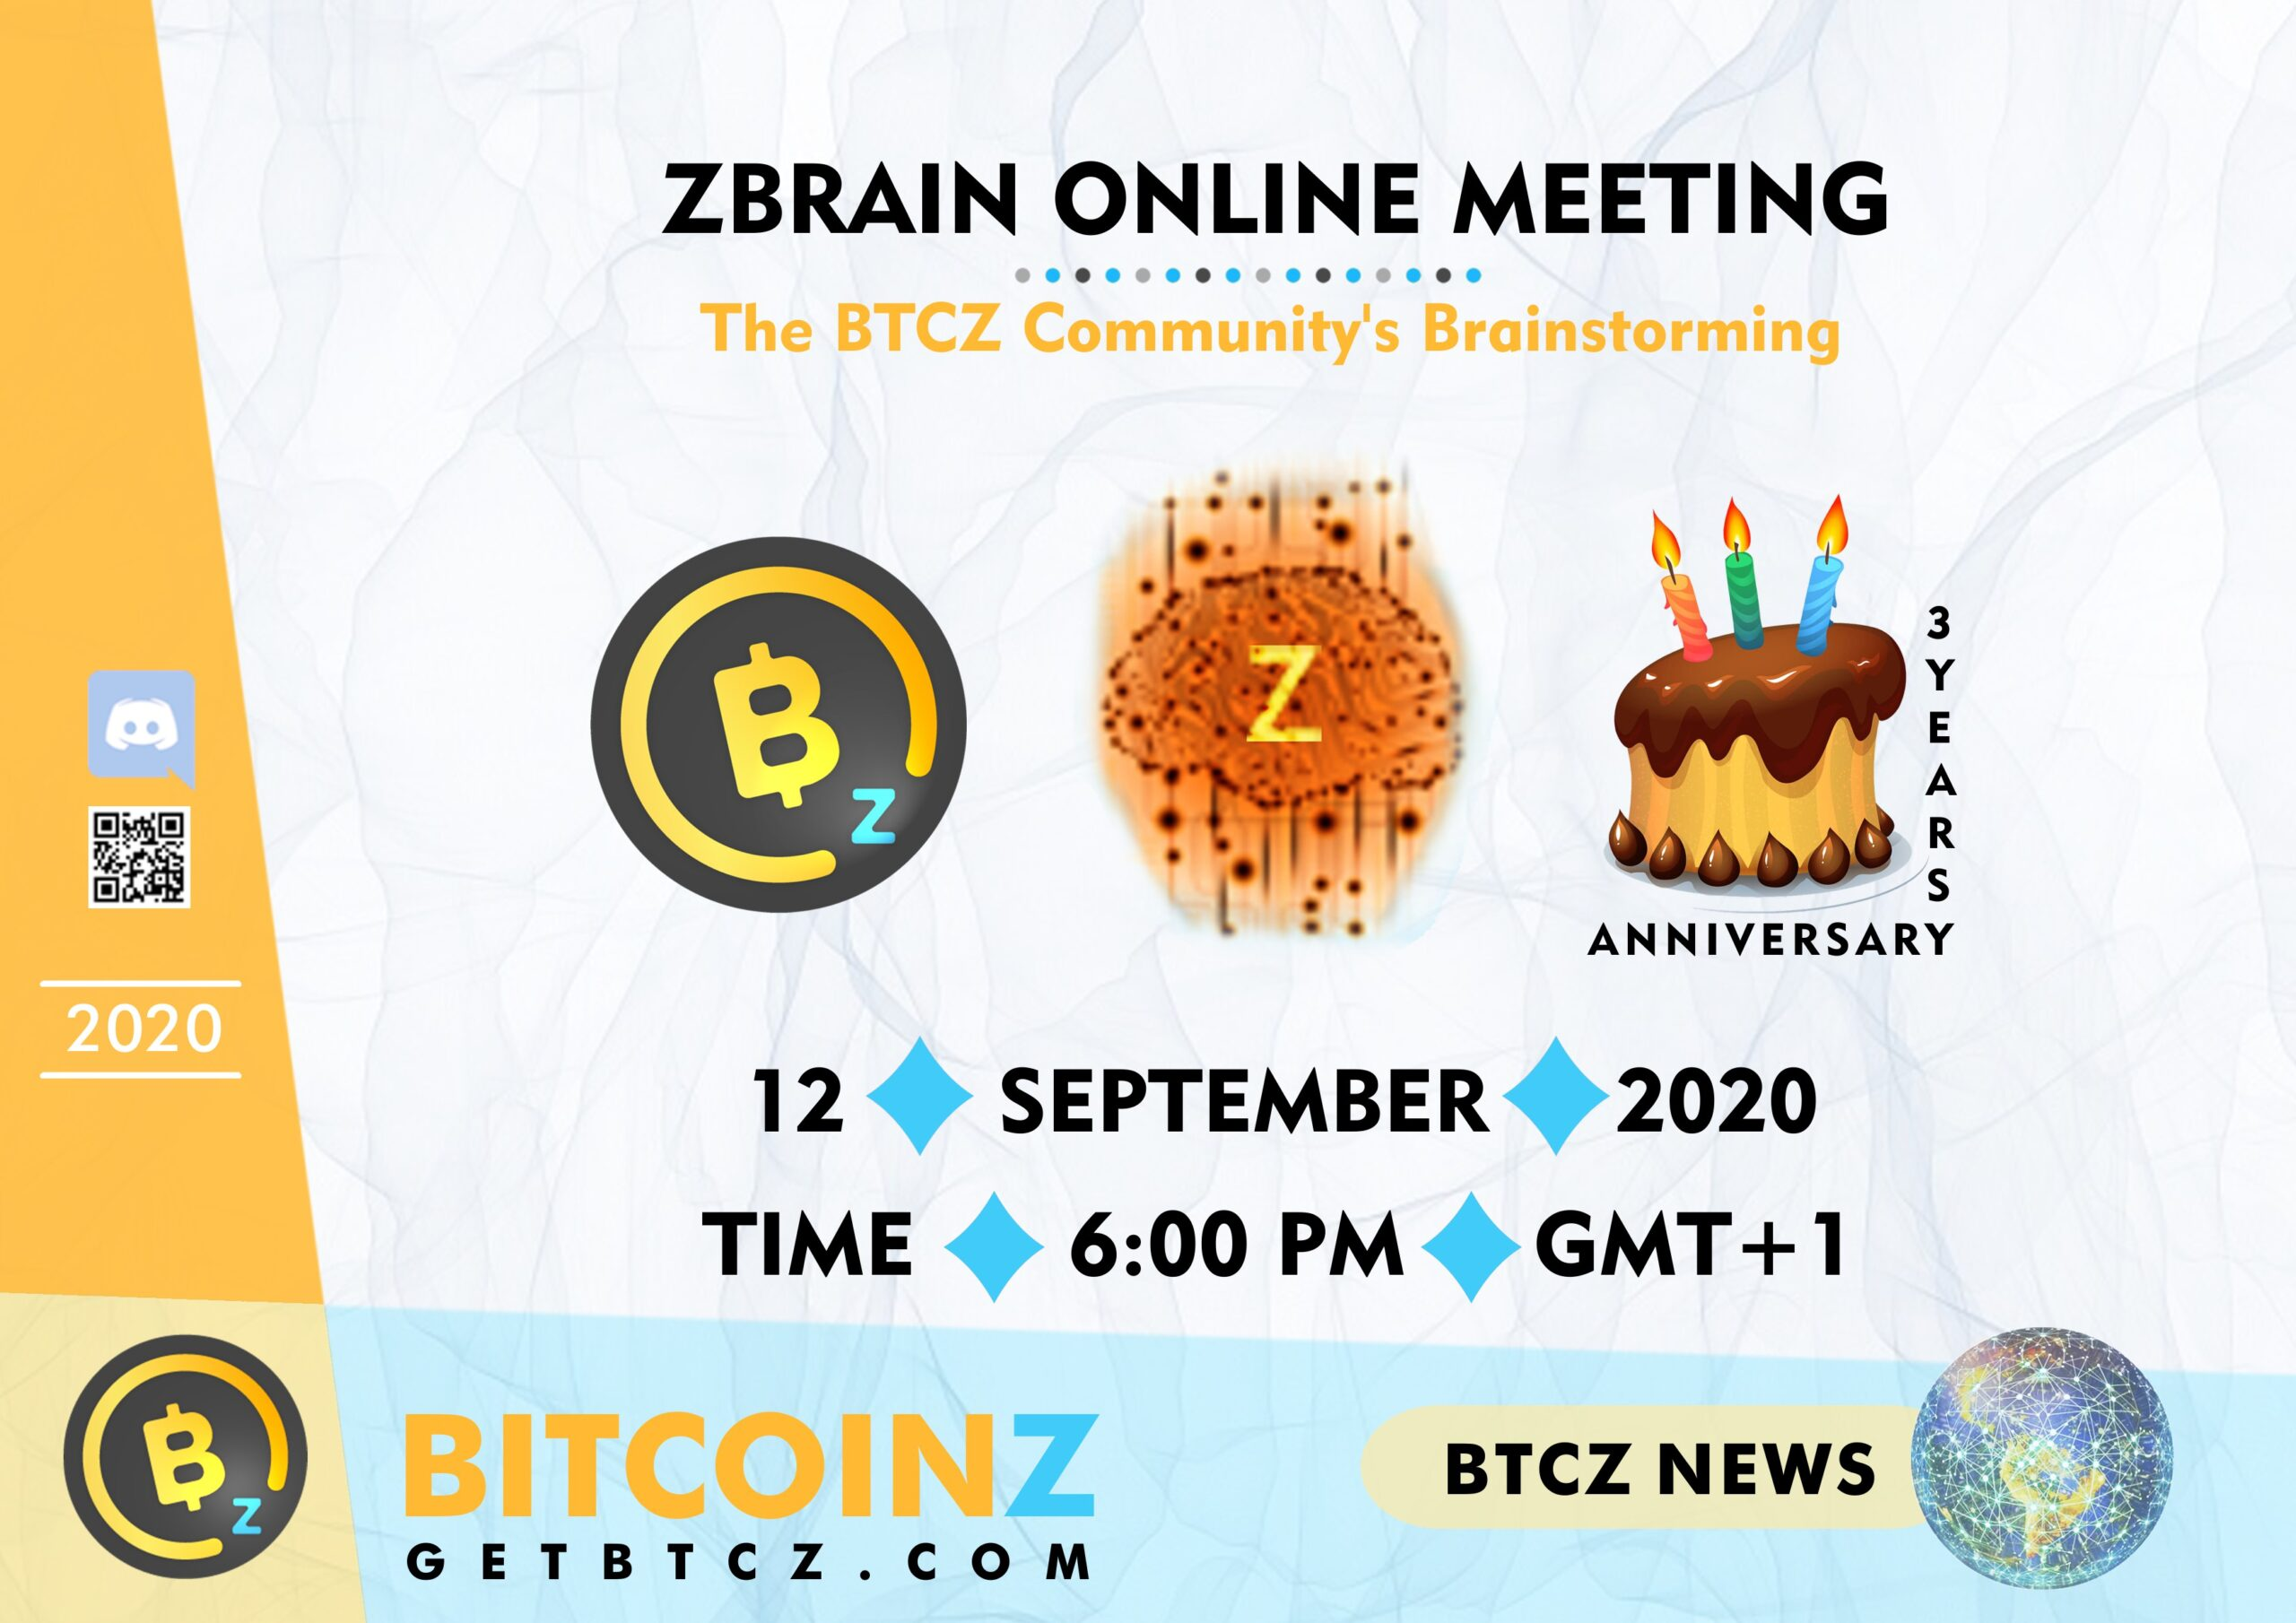 Z-Brain Online Meeting & BITCOINZ Birthday!